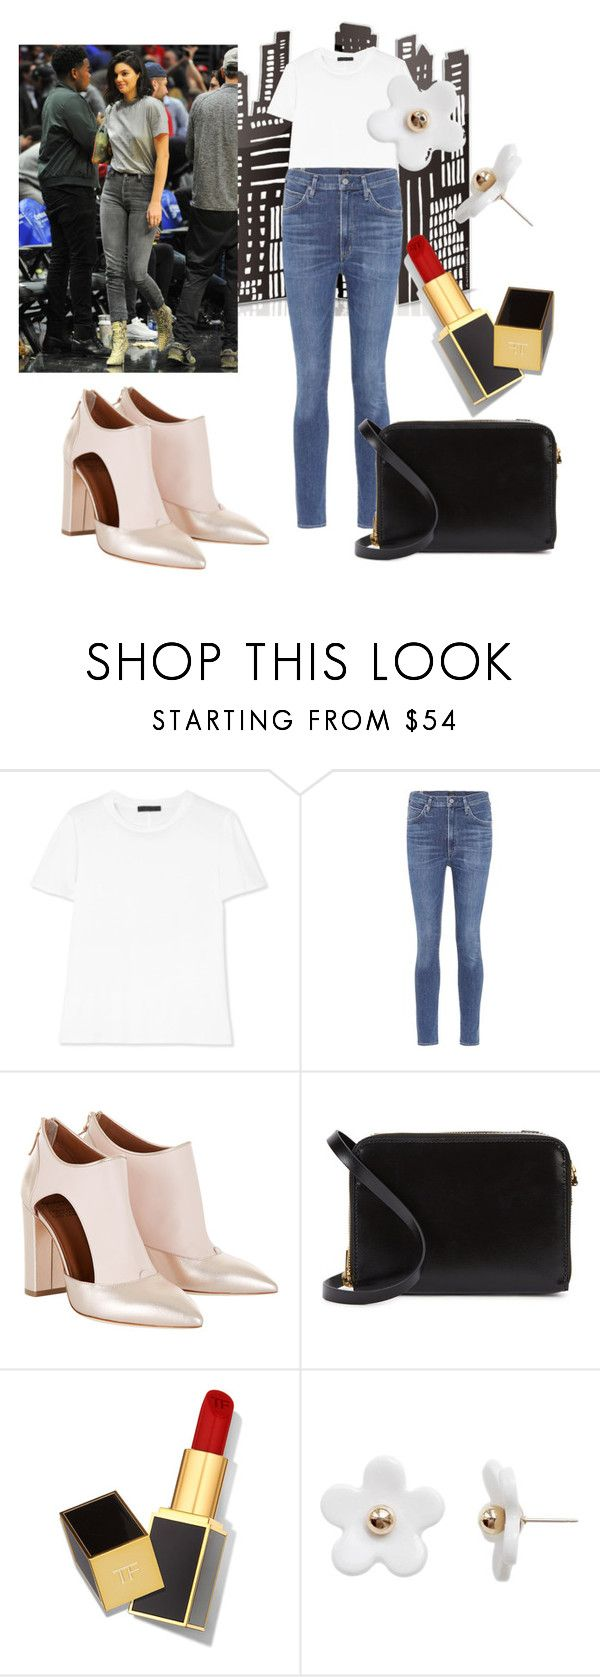 """model day out"" by andhika-n on Polyvore featuring The Row, Citizens of Humanity, Sophie Hulme, Tom Ford and Poporcelain"